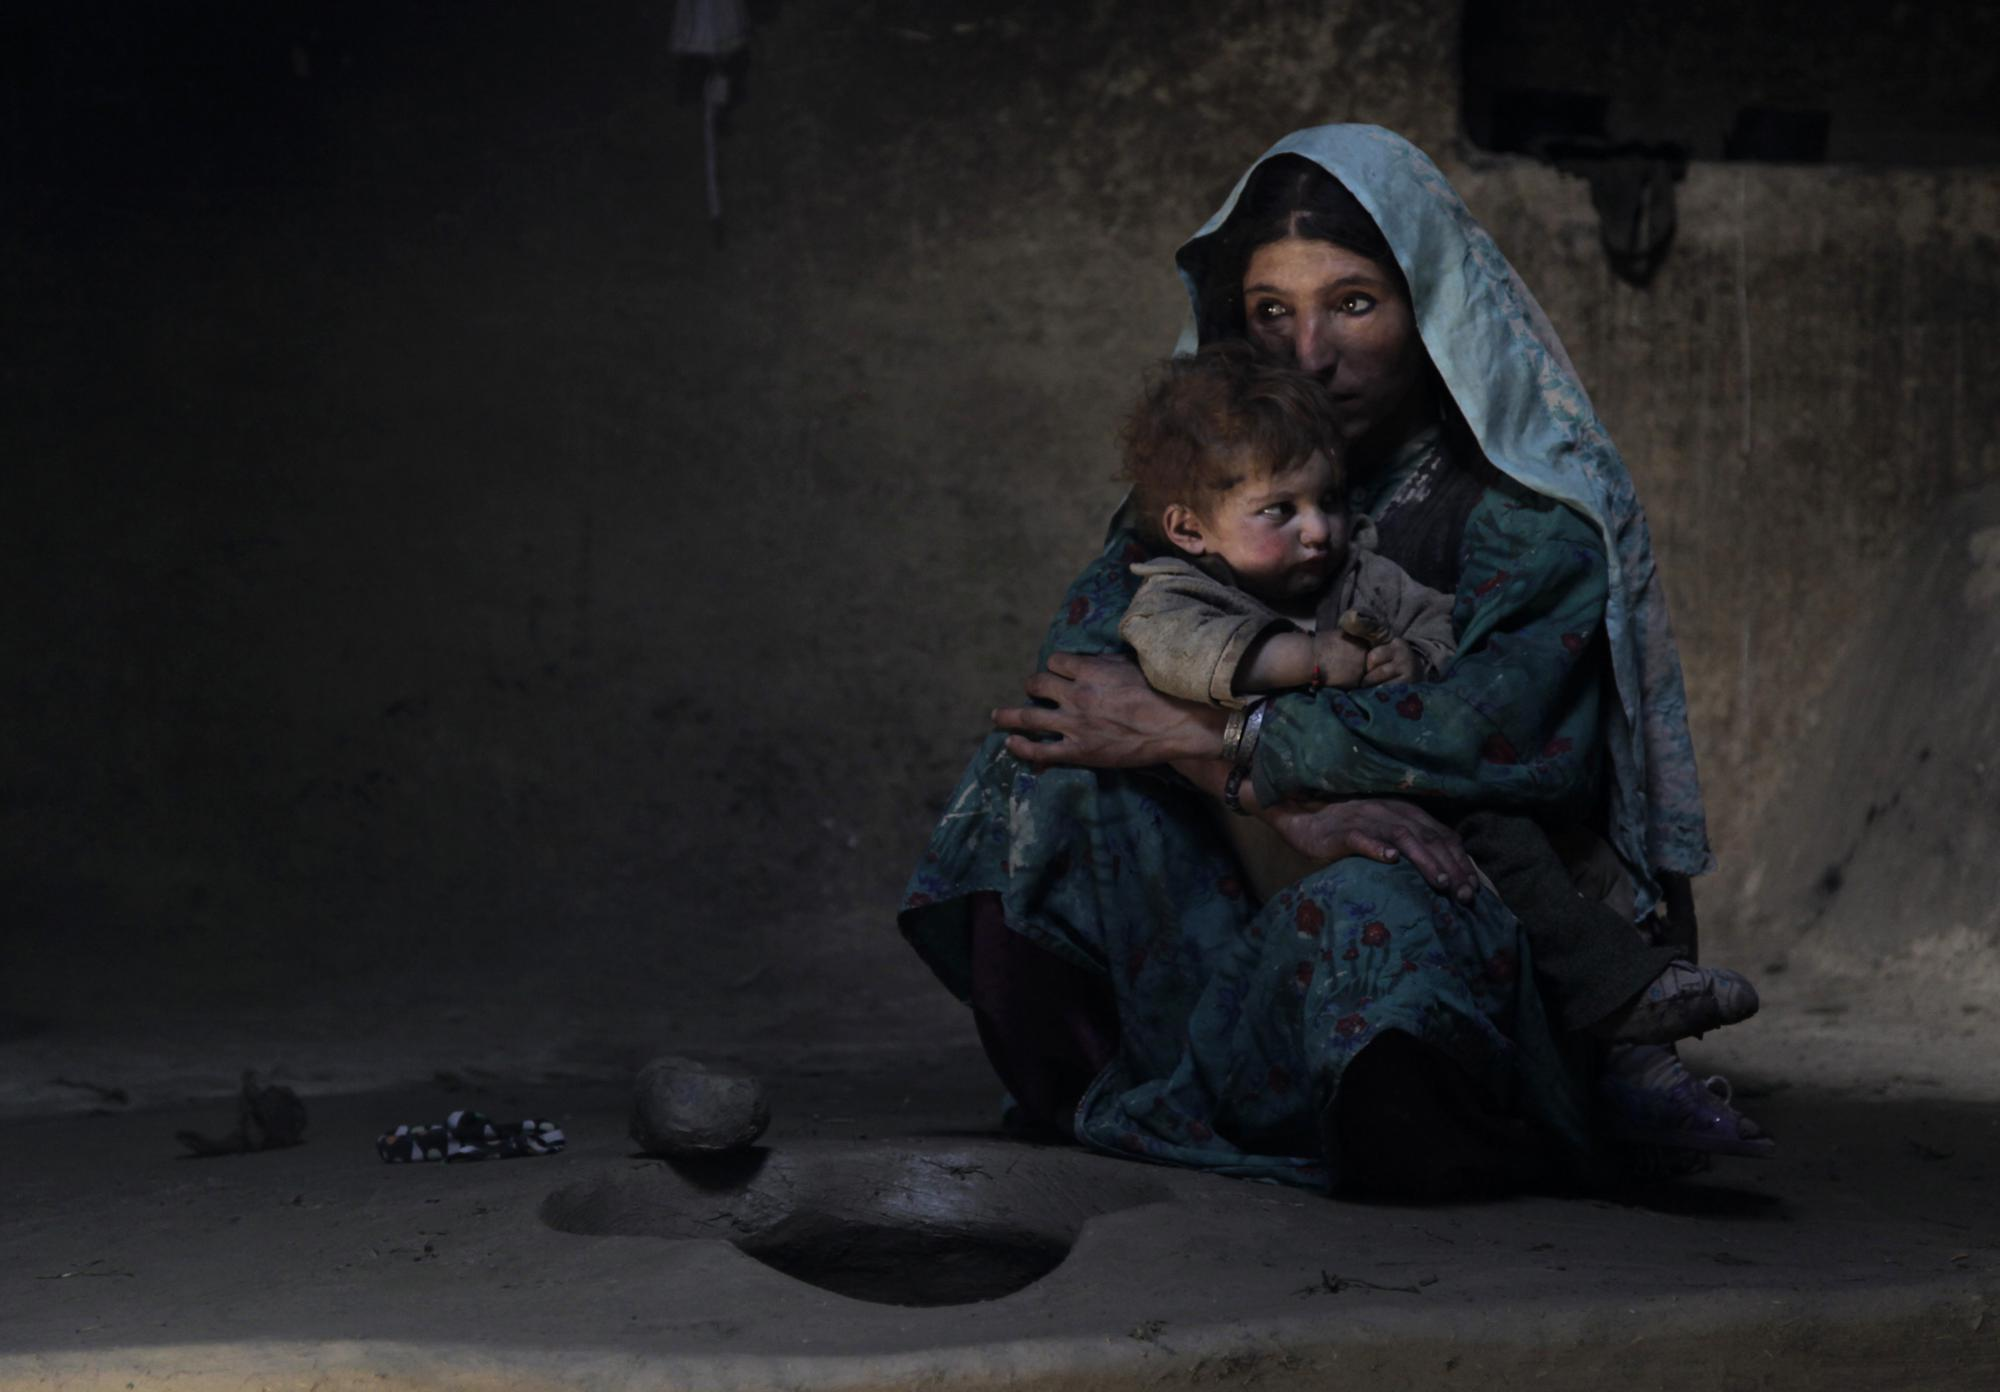 """Sarab village resident Raihan comforts her 1-year-old son after having an early morning opium smoke with family members in the Badakhshan province of Afghanistan, July 13, 2009. Raihan was addicted to opium while pregnant with her son making him an addict at birth. """"When he was born, he would cry day and night. But when she blows smoke in his face, he sleeps,"""" said her father Islam Beg. In dozens of mountain hamlets in this remote corner of Afghanistan, opium addiction has become so entrenched that whole families, from toddlers to old men, are addicts. (AP Photo/Julie Jacobson)"""